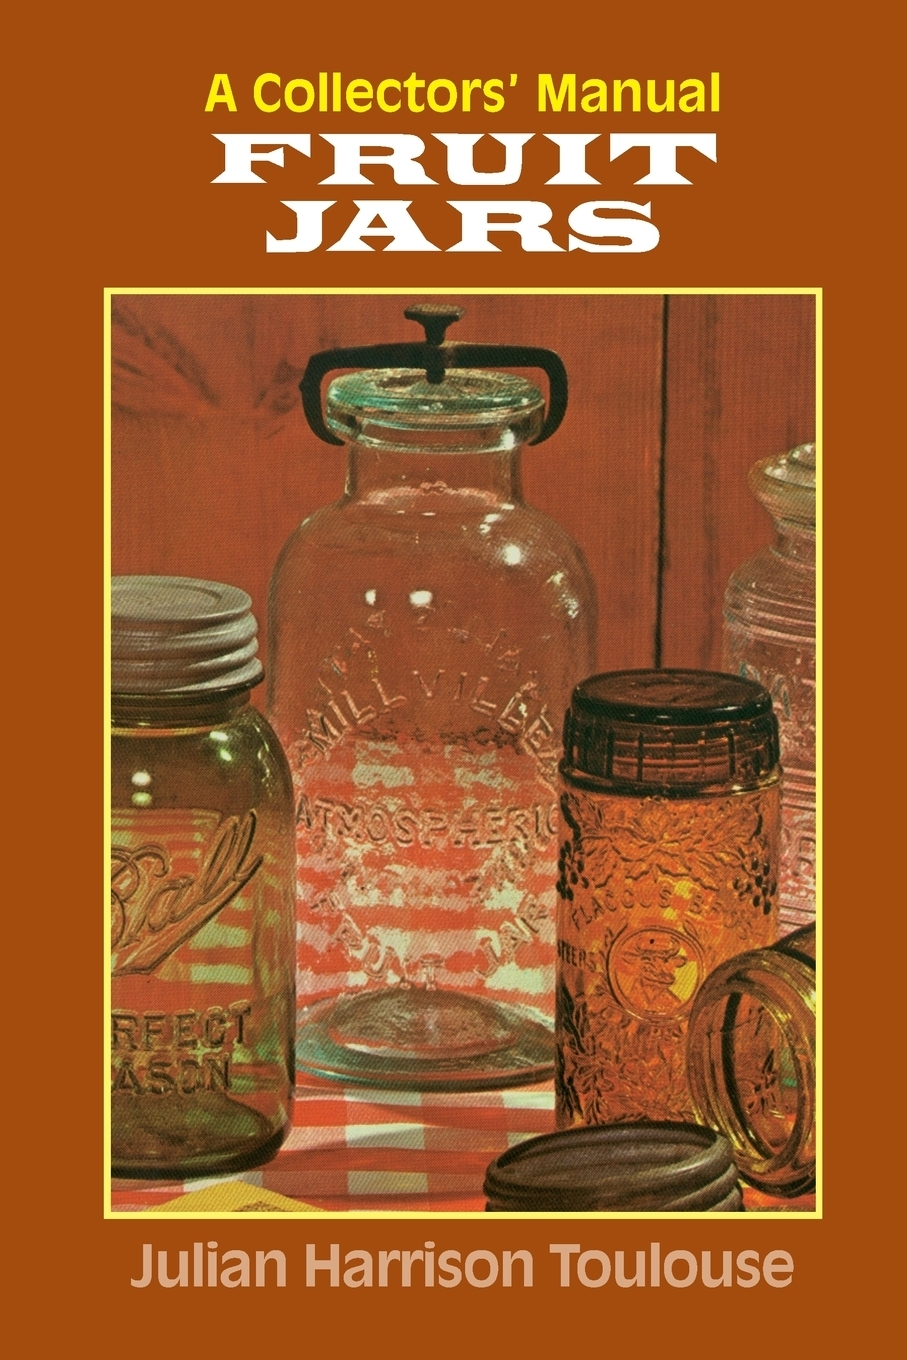 Julian Harrison Toulouse. Fruit Jars. A Collector's Manual